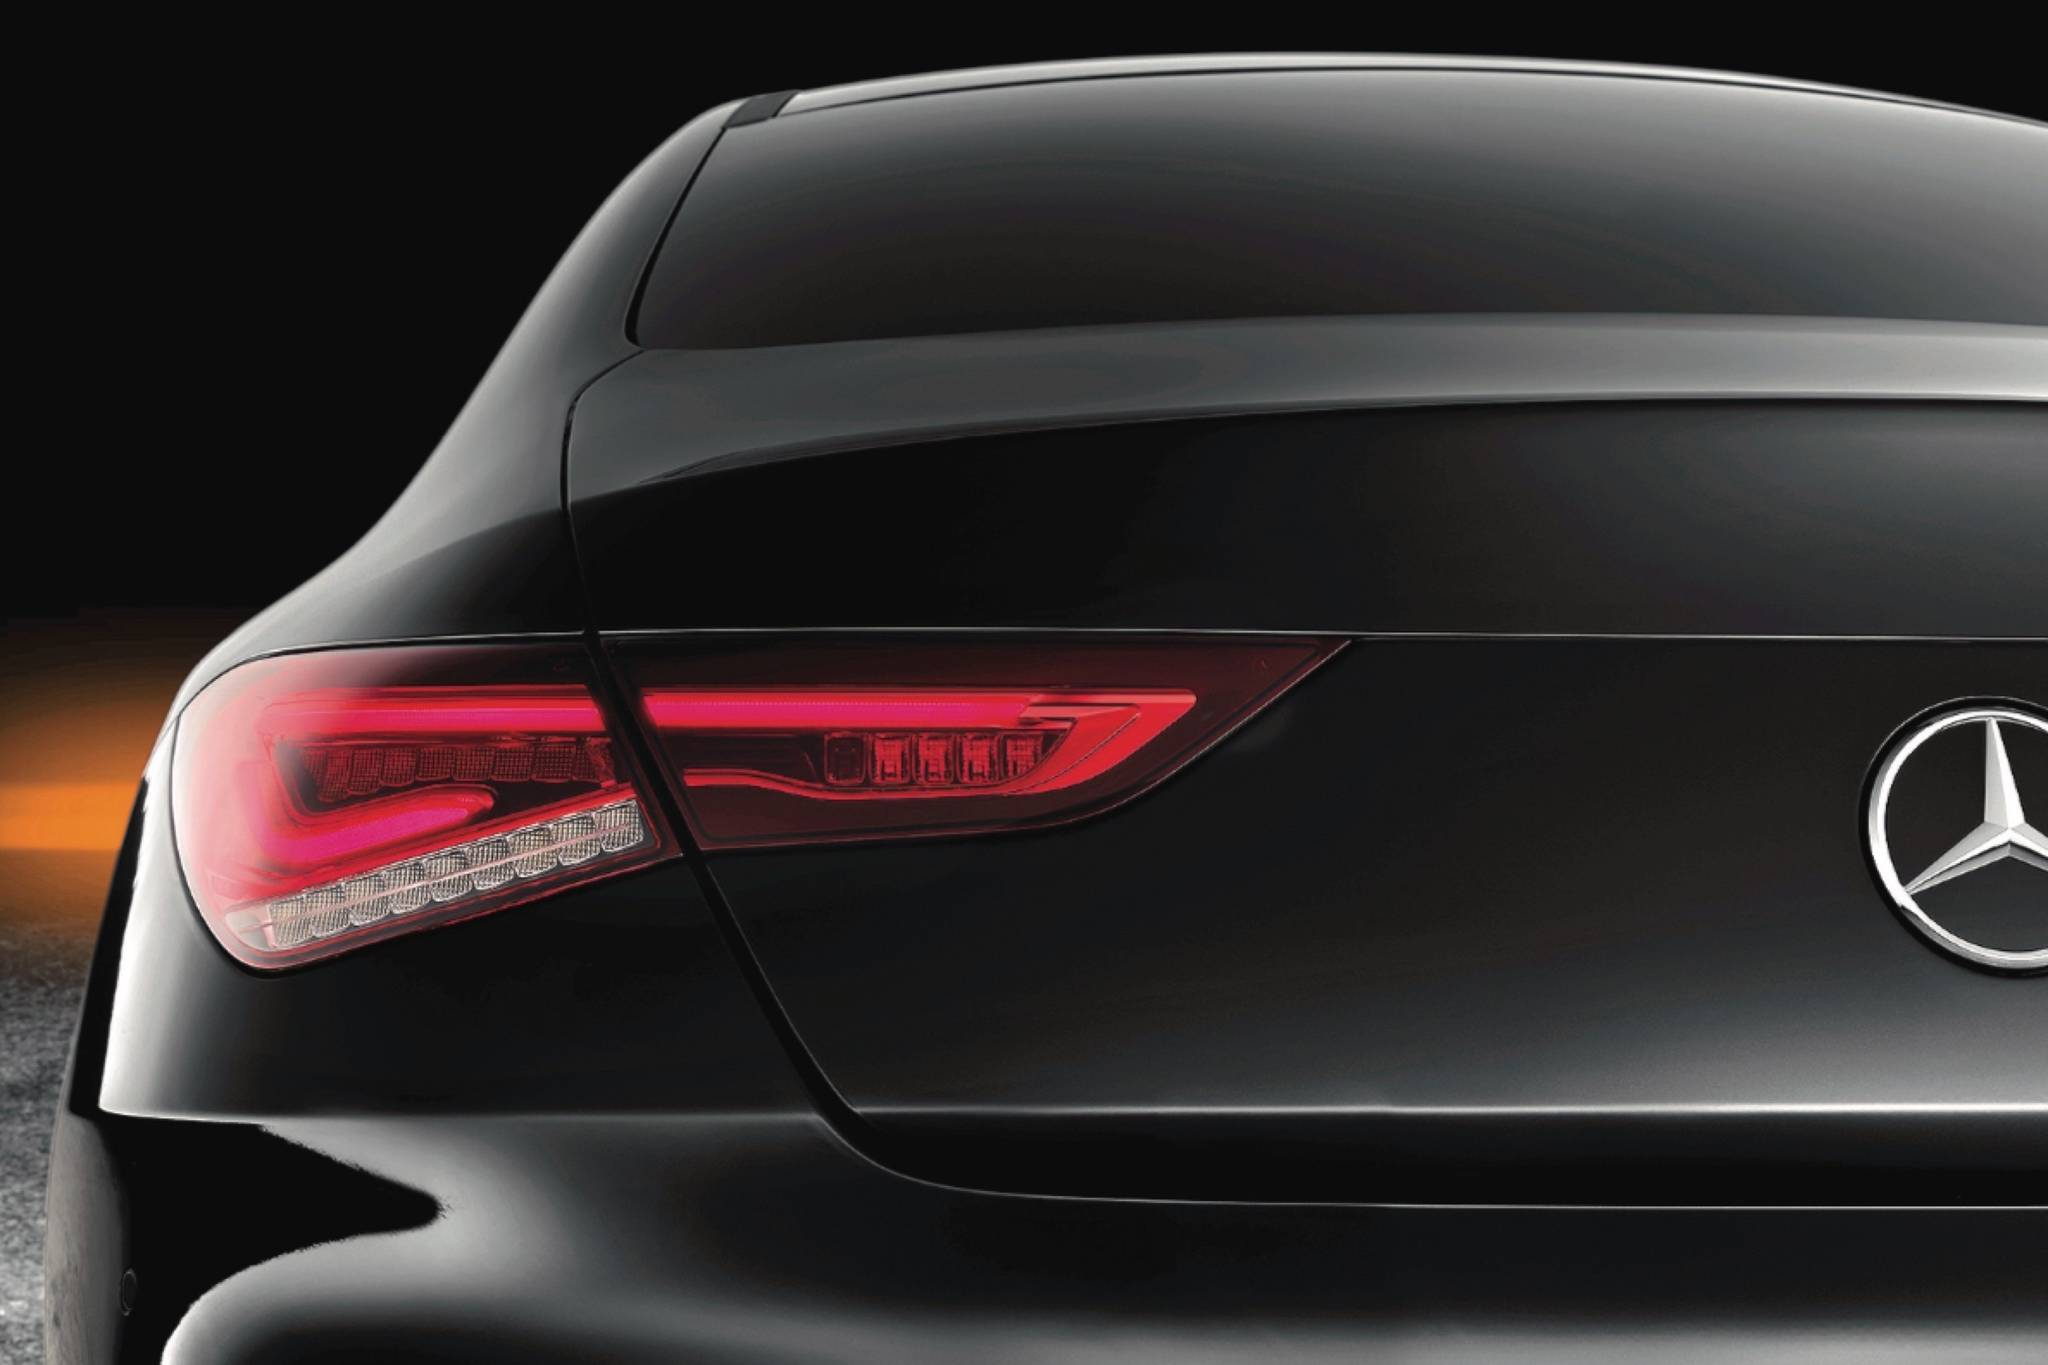 Although Mercedes has addressed practicality by making the truck lid more than 24 centimetres wider at the base, the CLA clings to its artful fastback design, a shape that unfortunately crowds back-seat passengers. Photo: Mercedes-Benz